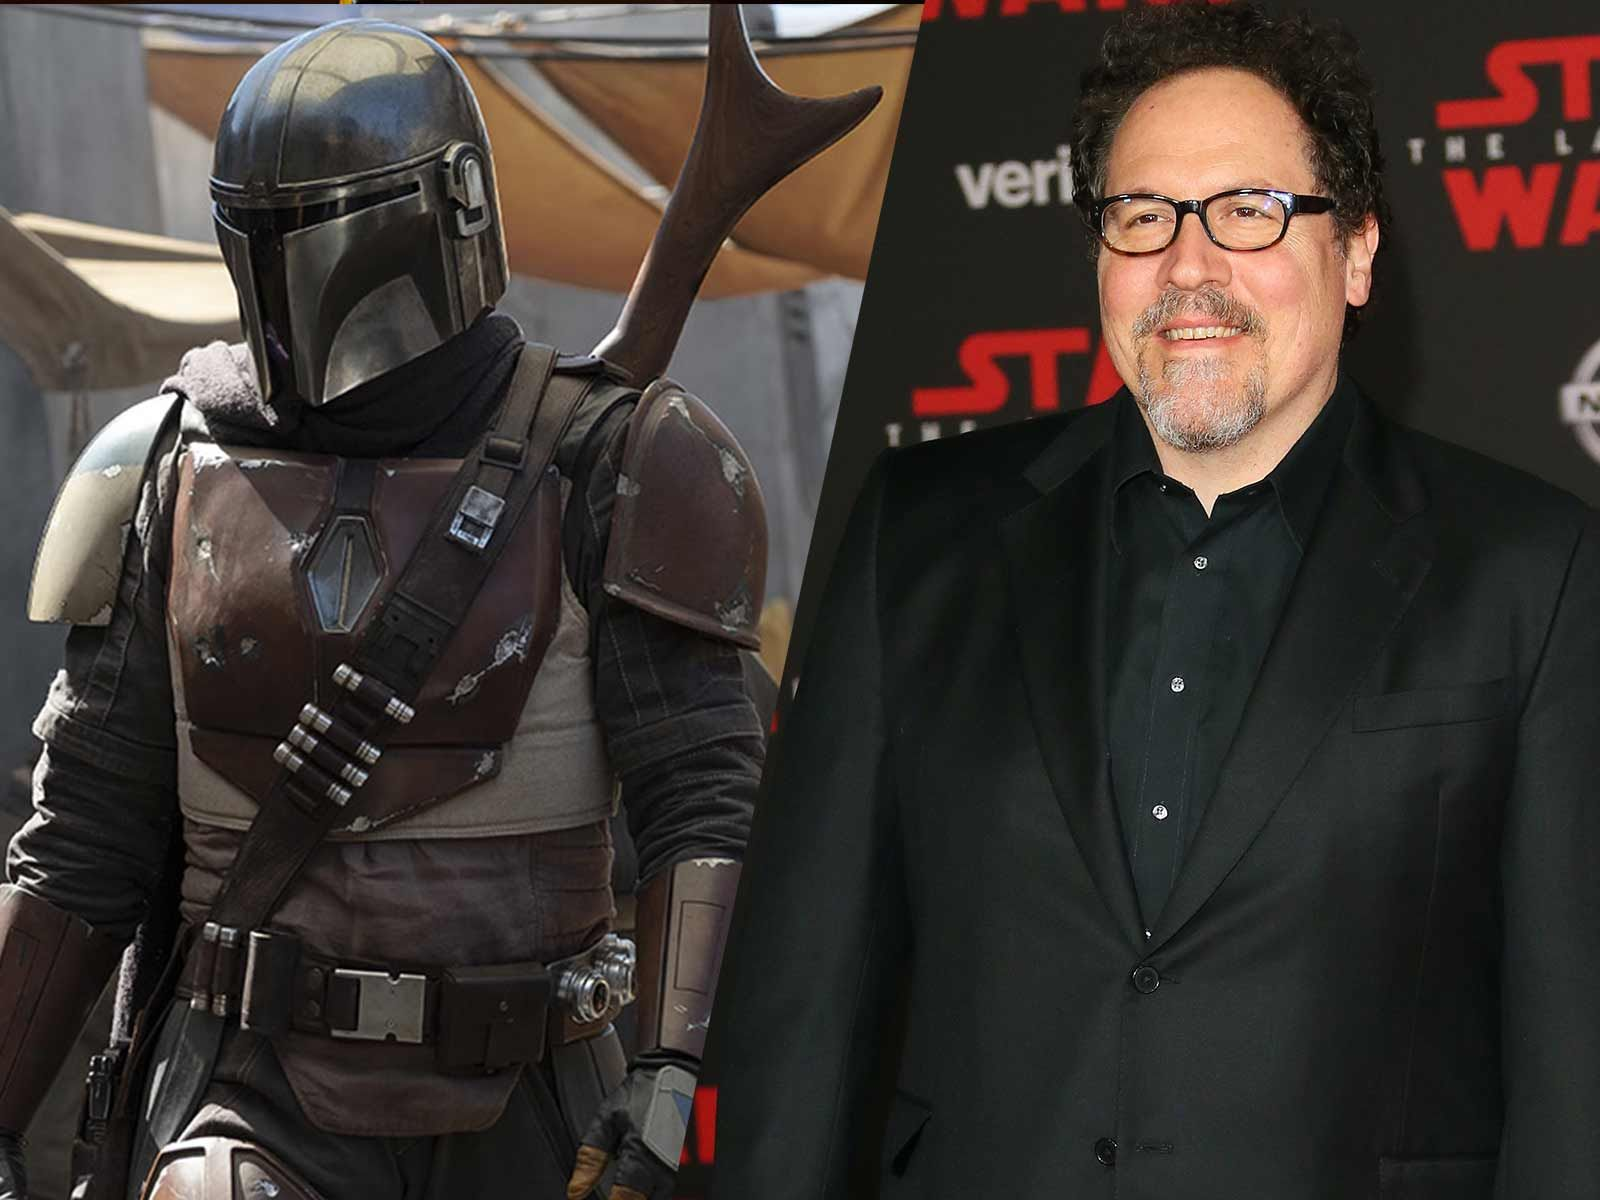 Jon Favreau on The Mandalorian Season 2 Filming and Production